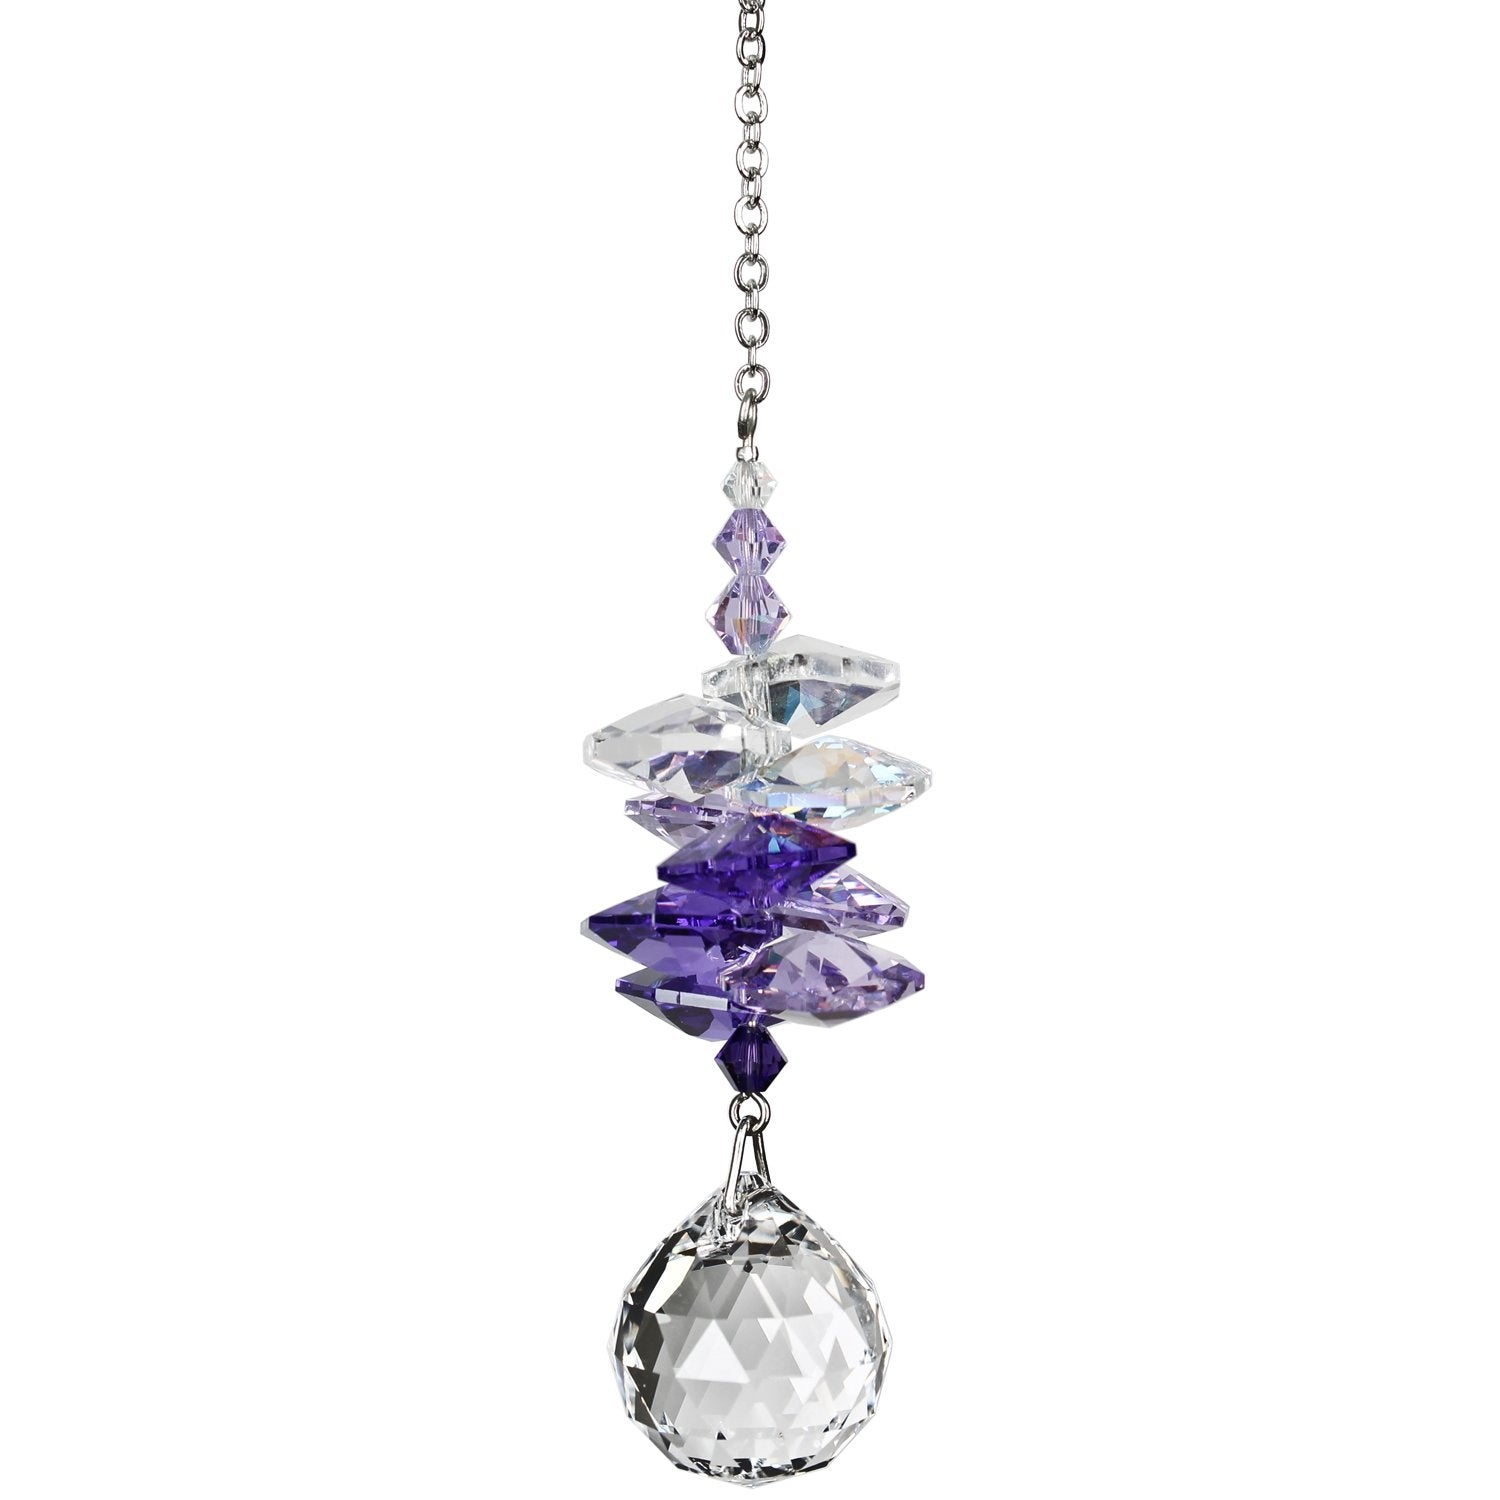 Crystal Sunrise Cascade Suncatcher - Purple alernate product image